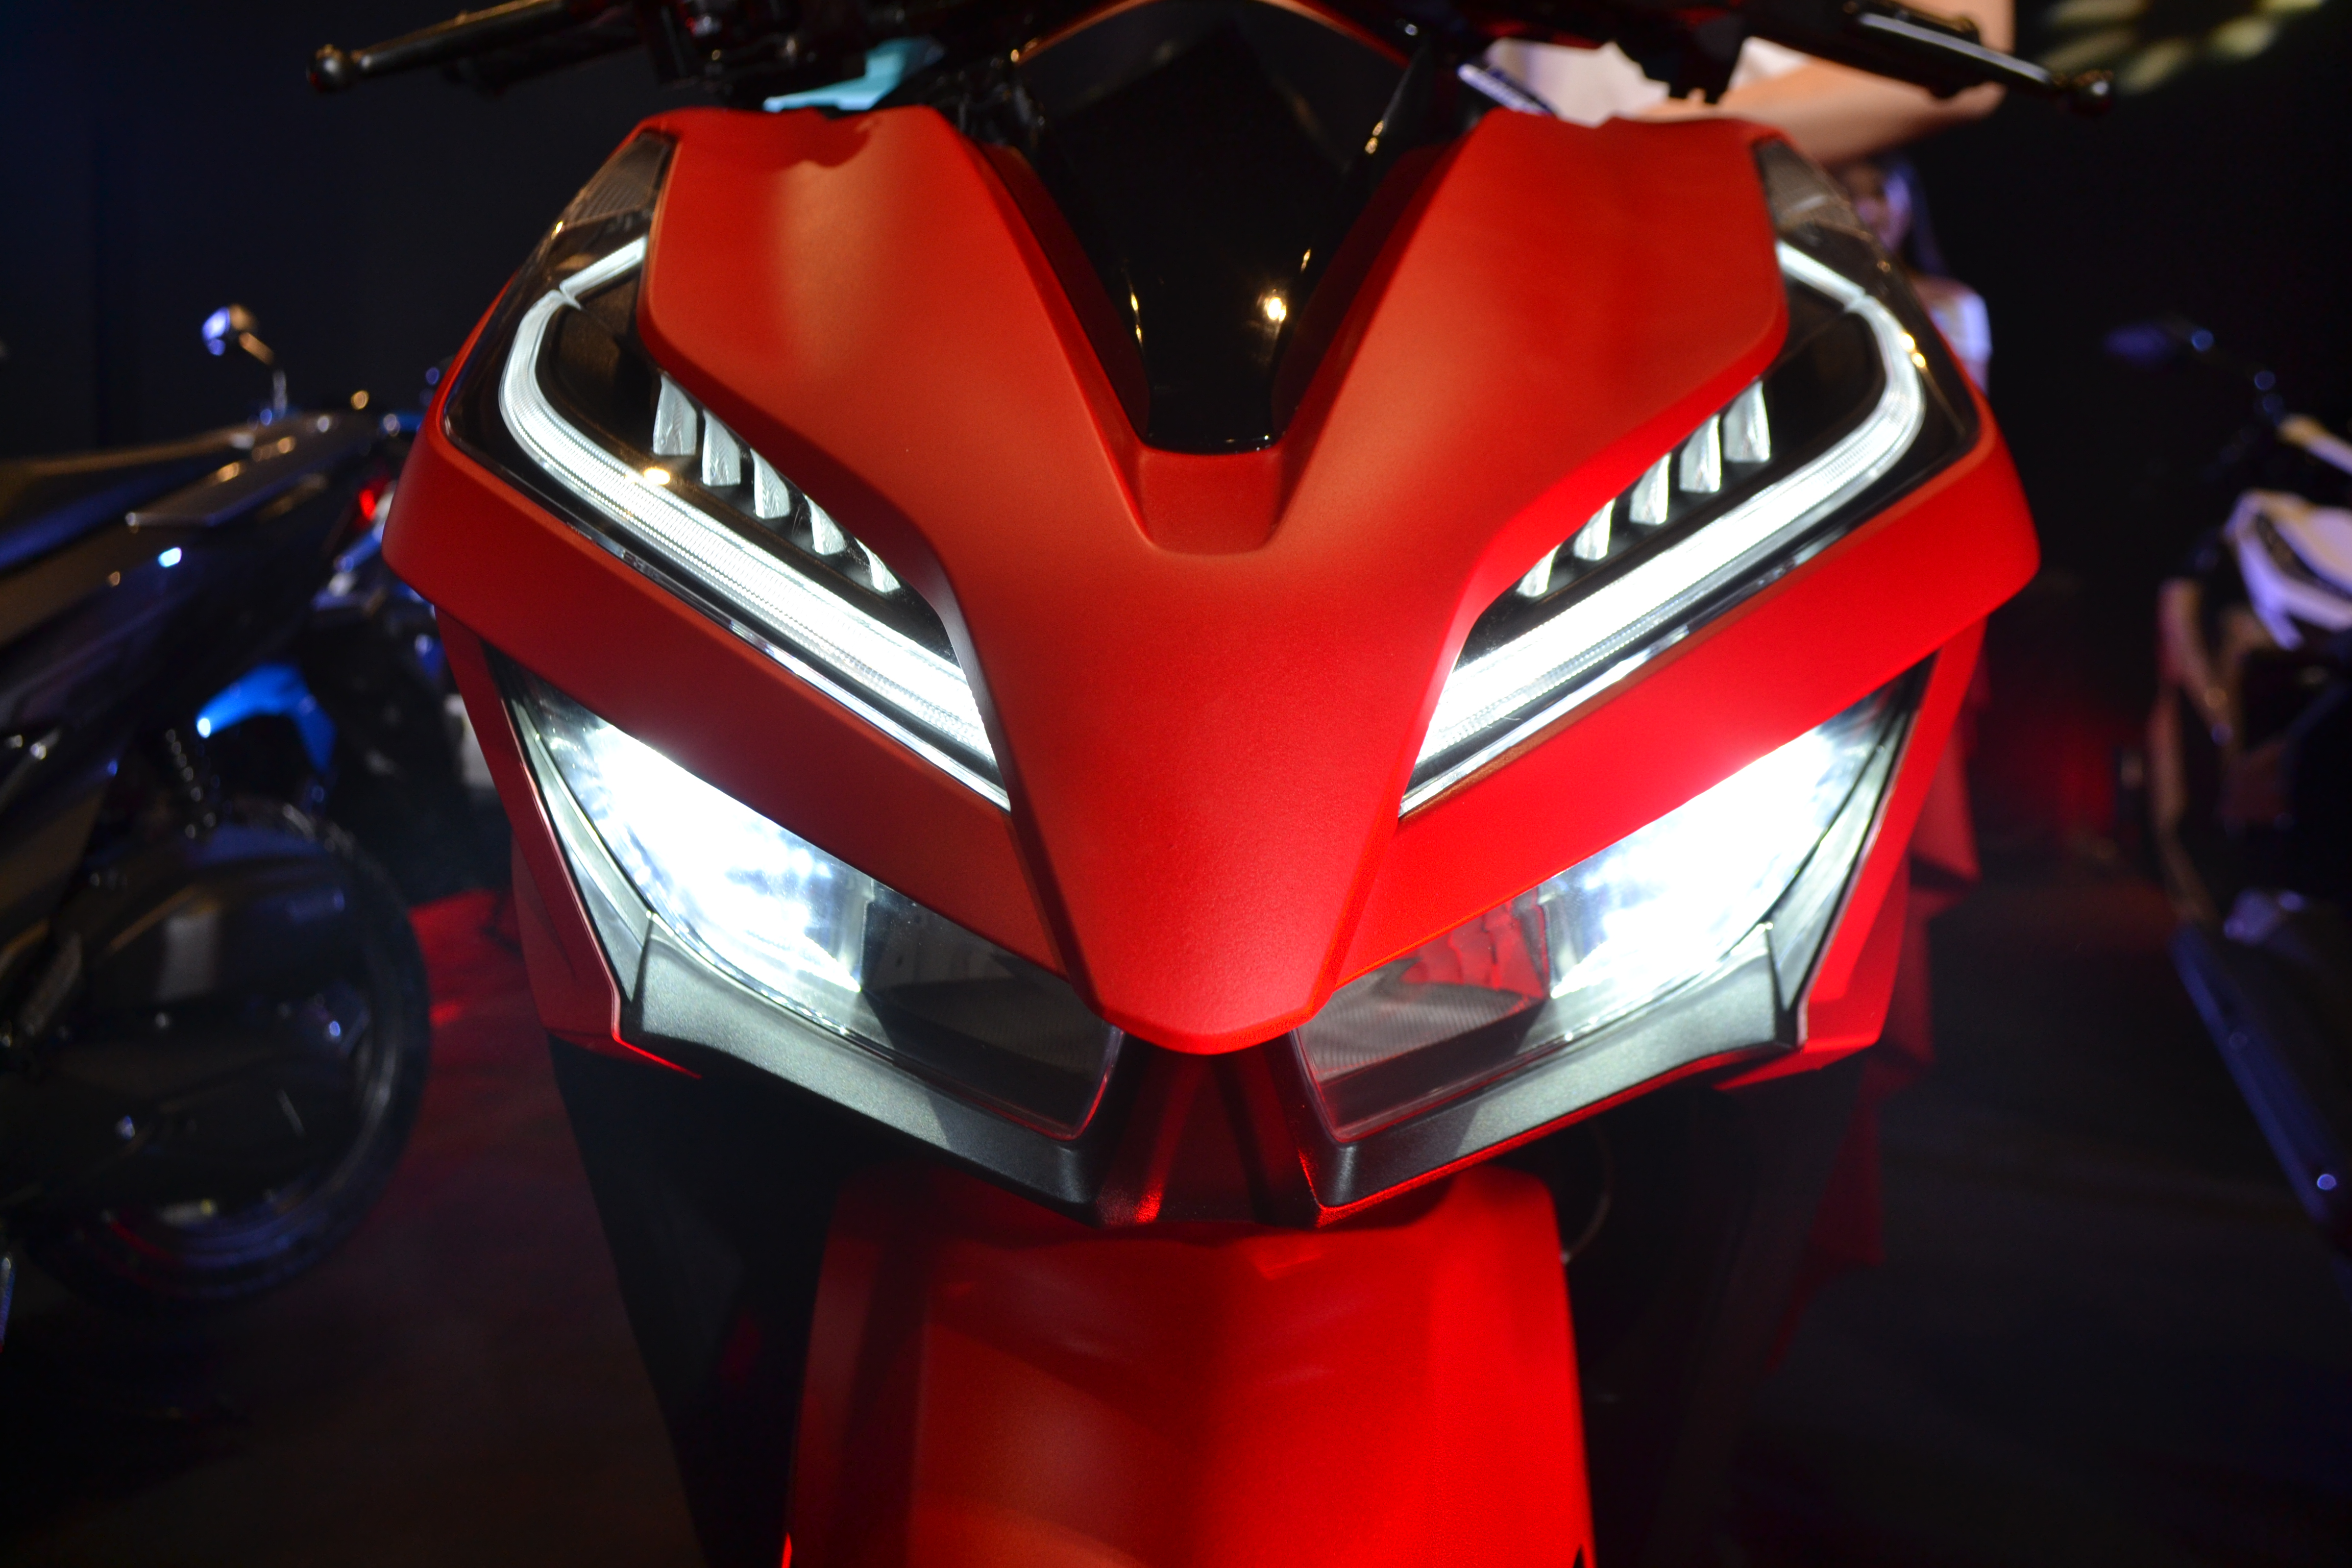 Honda Philippines Inc Brings Out The Game Changer With A New Line Motorcycles Designs Manila September 22 2018 Hpi Number One Motorcycle Manufacturer And Distributor In Today Introduces